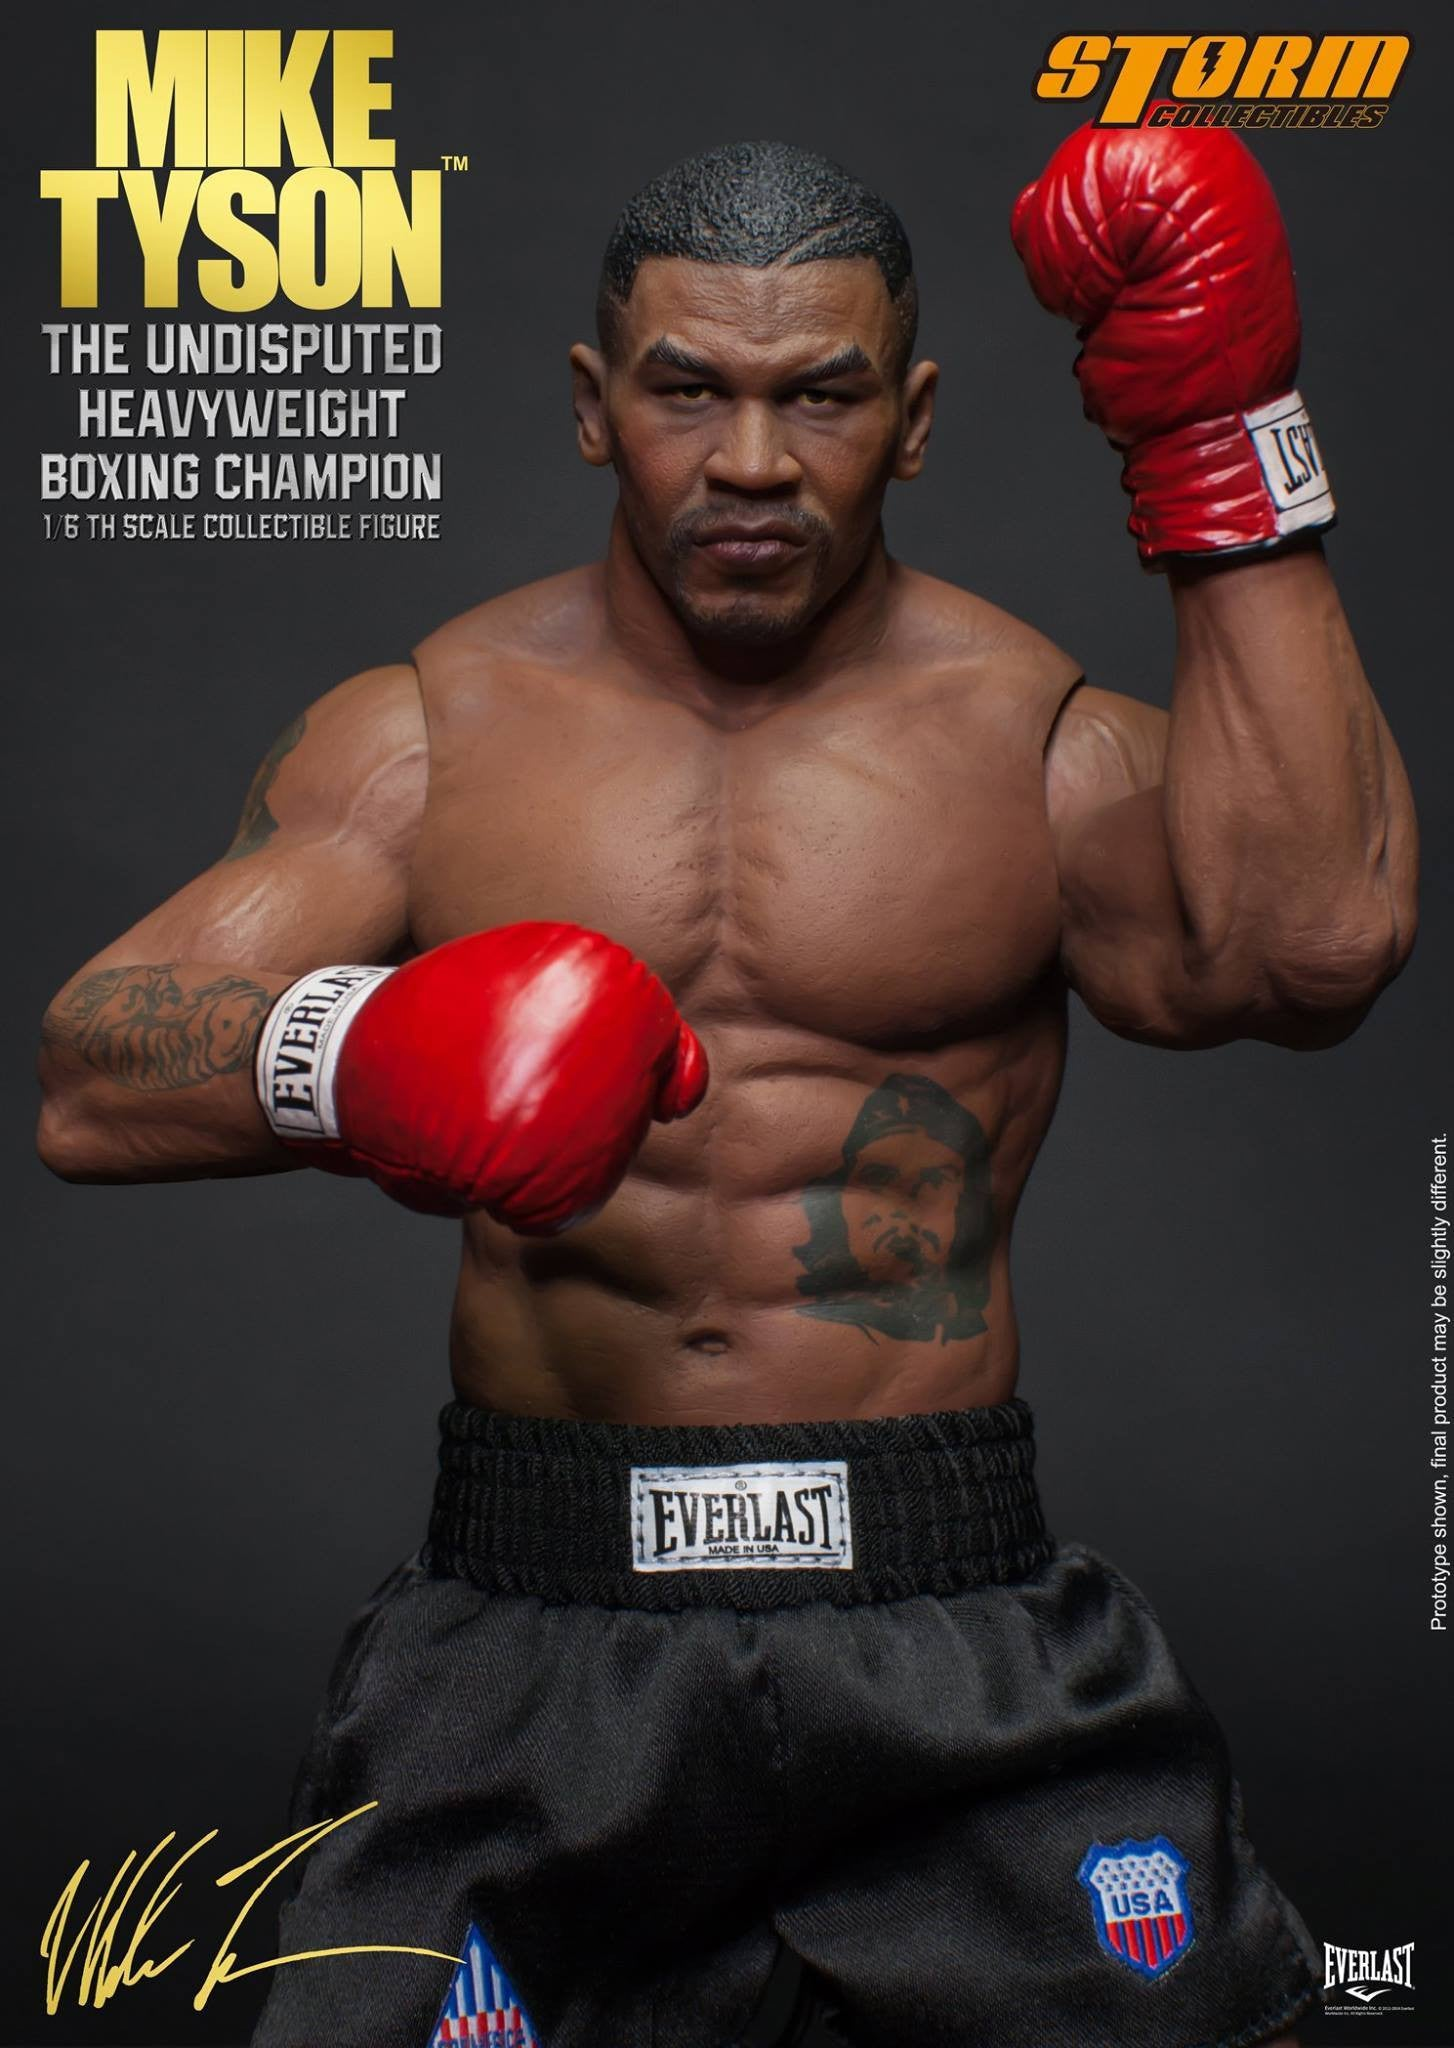 "Storm Collectibles - 1:6 Scale Collectible Figure - Mike Tyson ""The Undisputed Heavyweight Boxing Champion"" - Marvelous Toys - 19"